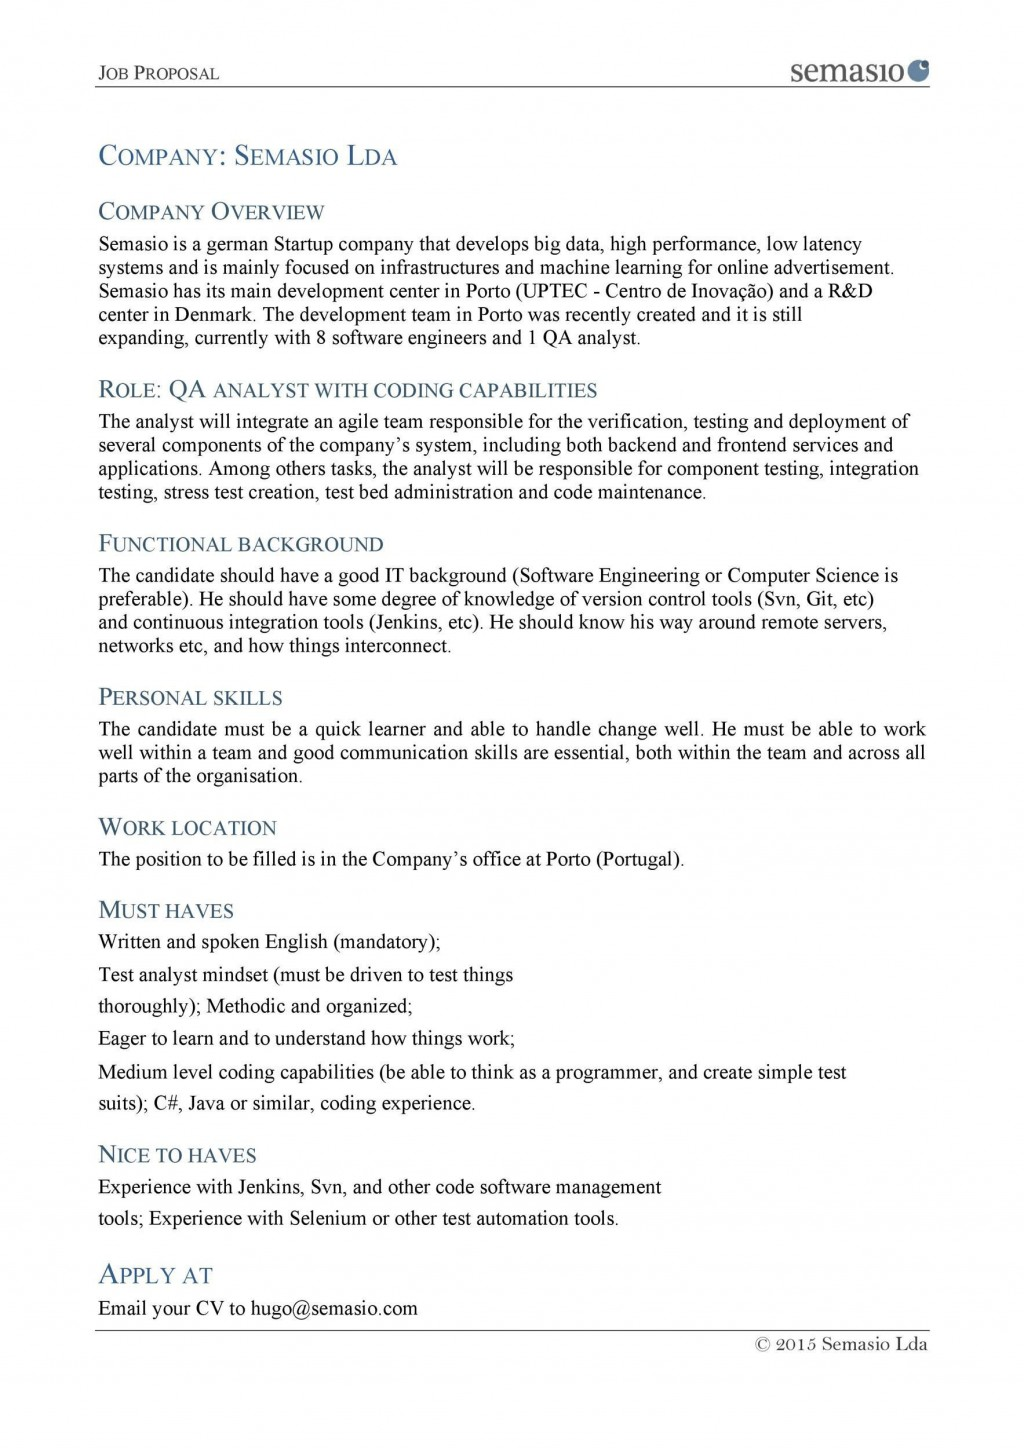 007 Unique Writing A Job Proposal Template Sample Inspiration Large